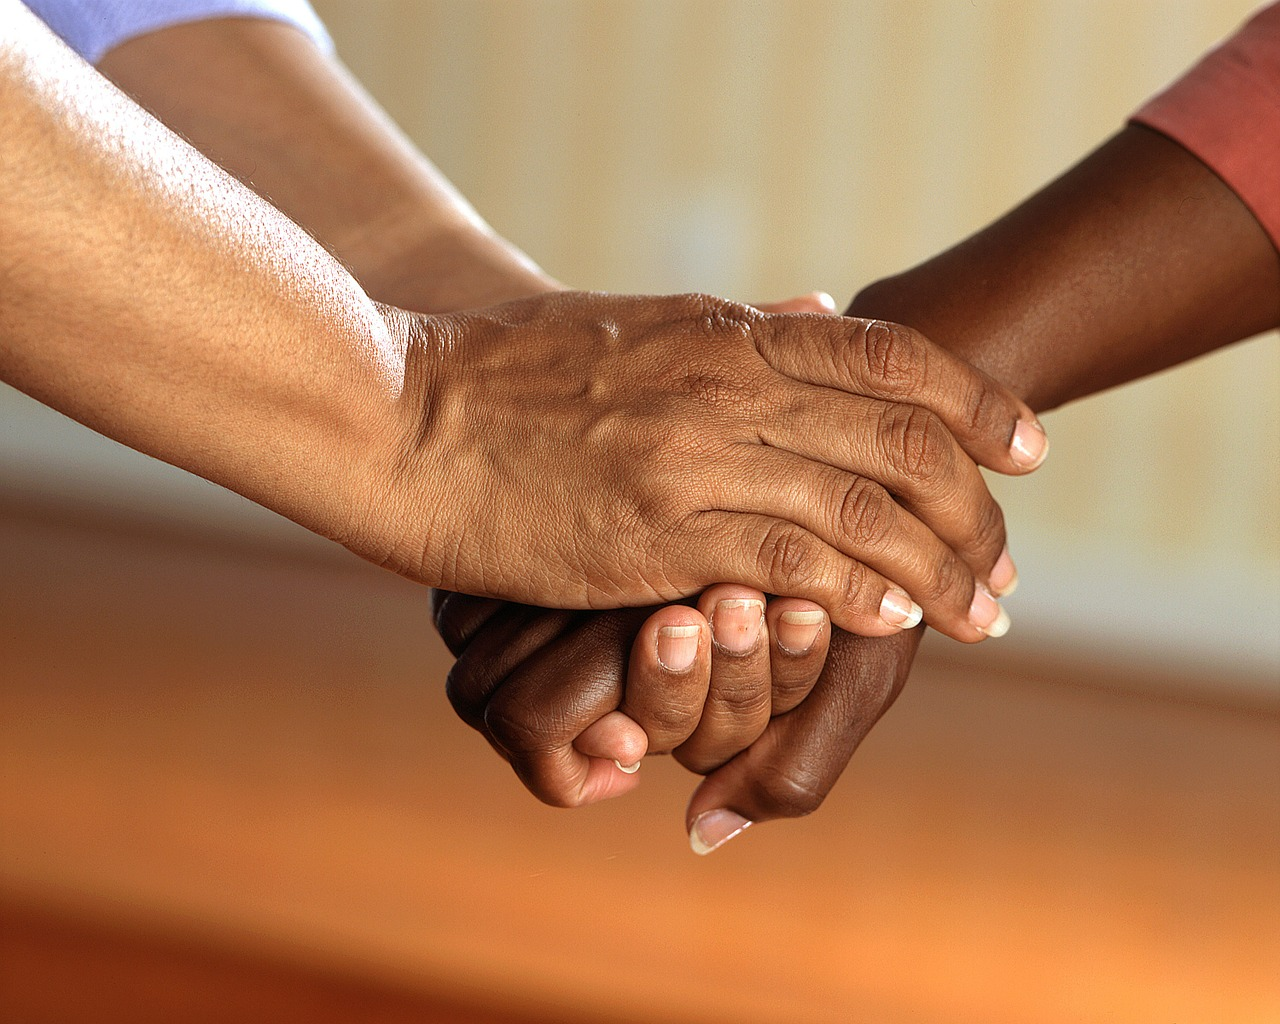 Family Caregiver Support: Remember To Take Care of Yourself